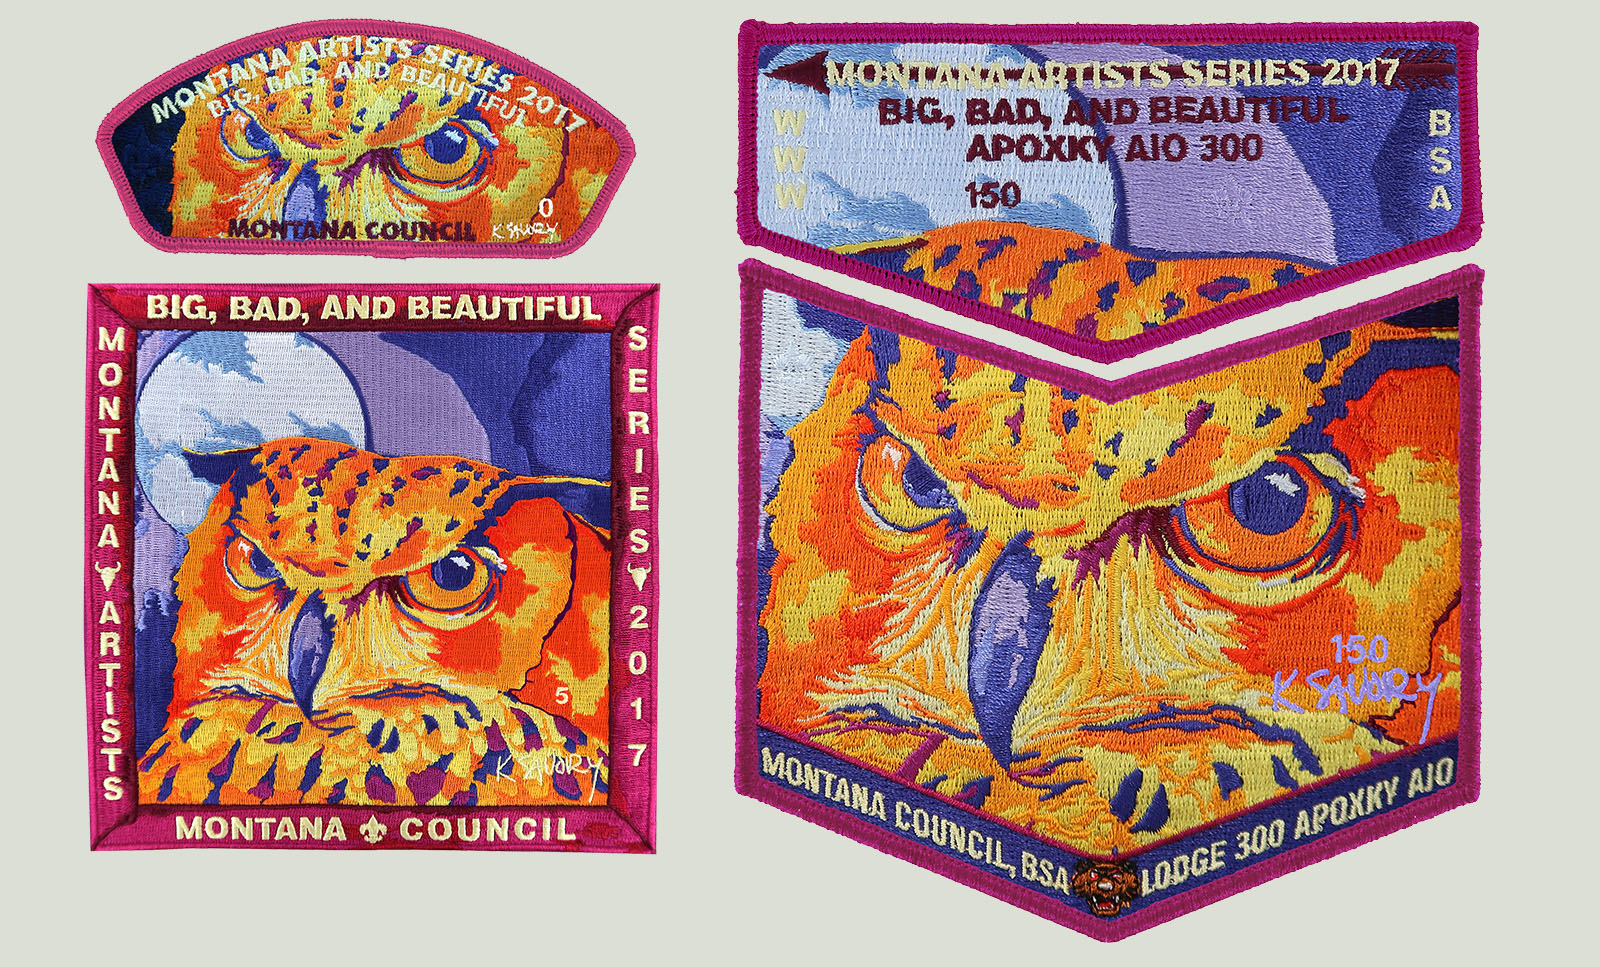 Big, Bad, and Beautiful, Limited Artist Series Patch